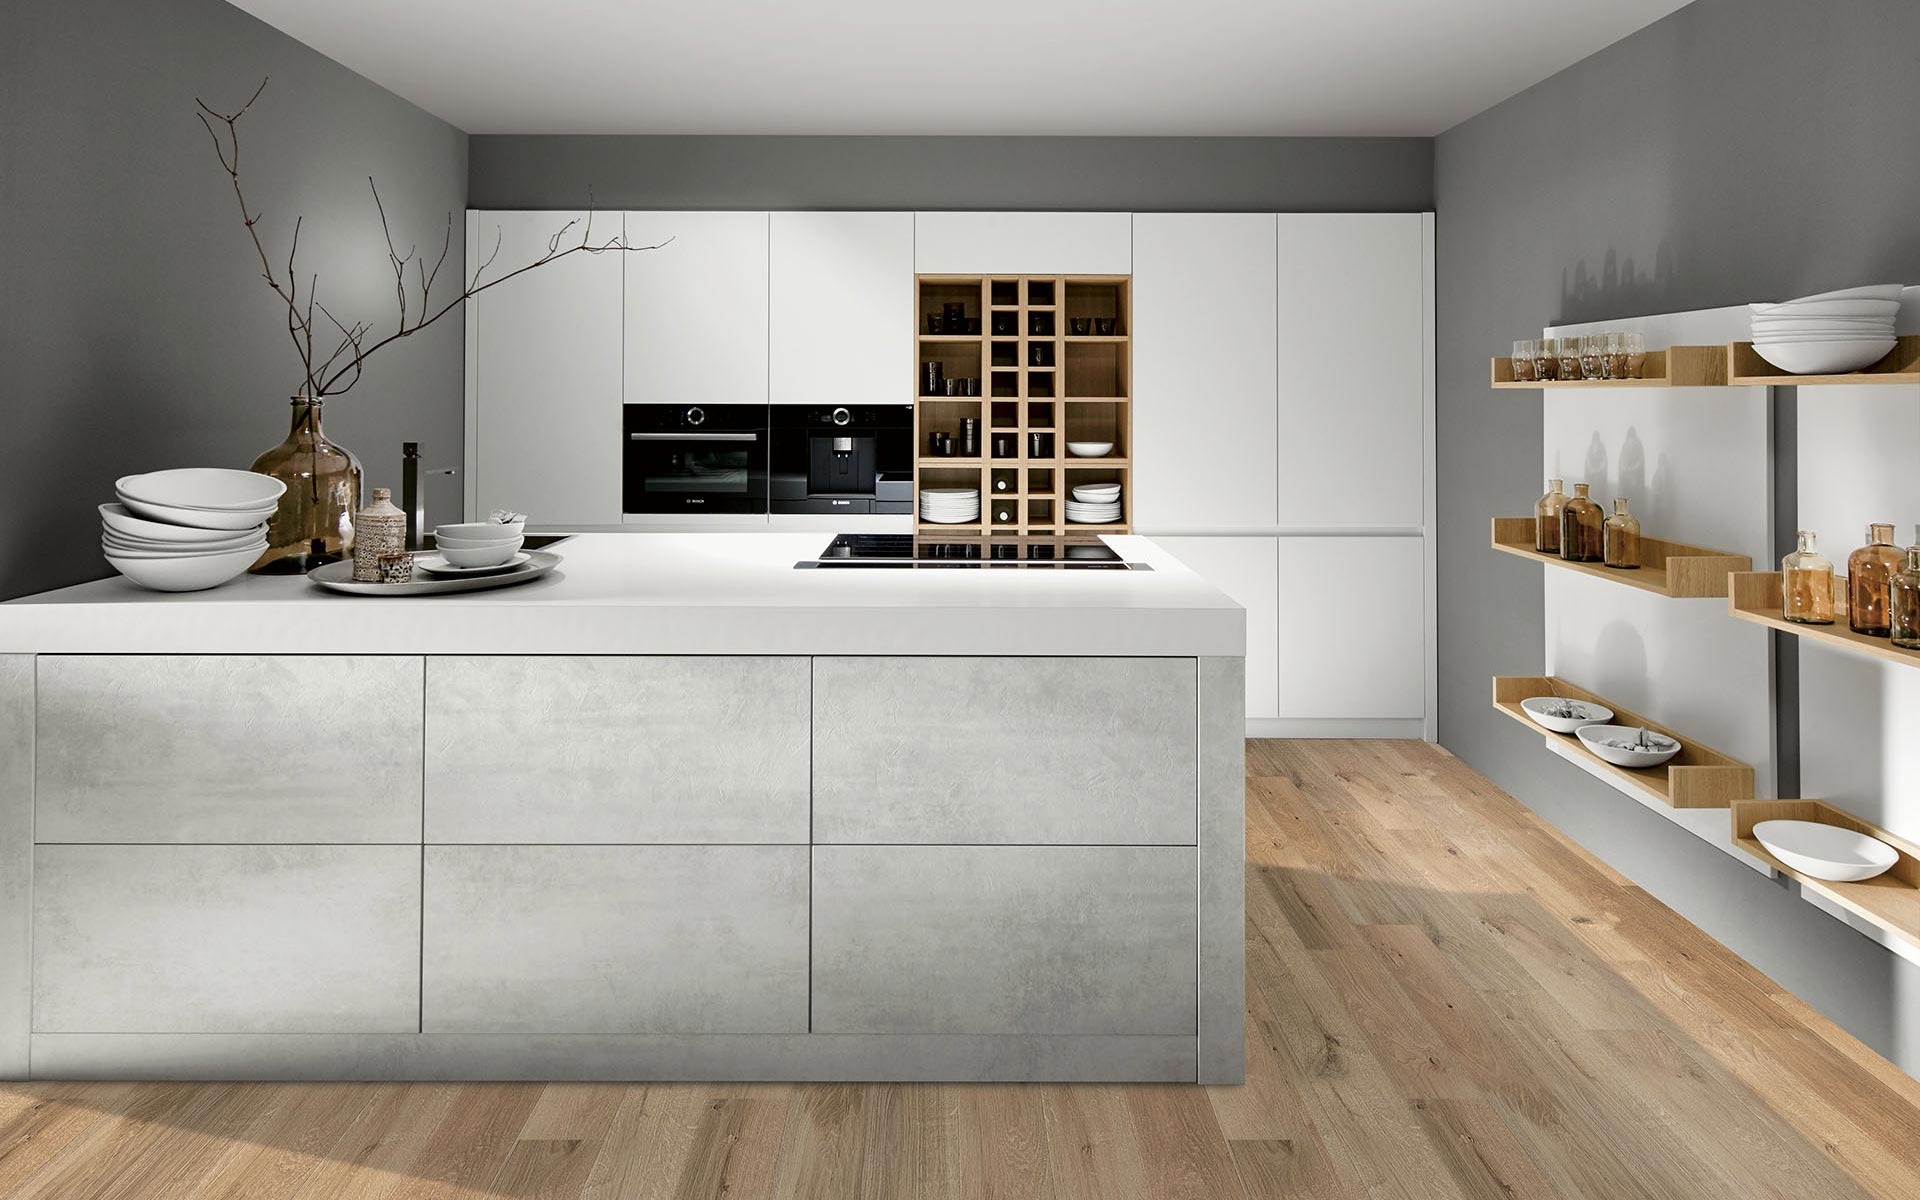 Toronto: Kitchens from Germany, Europe. Extrem Optiwhite • Cemento Light Grey